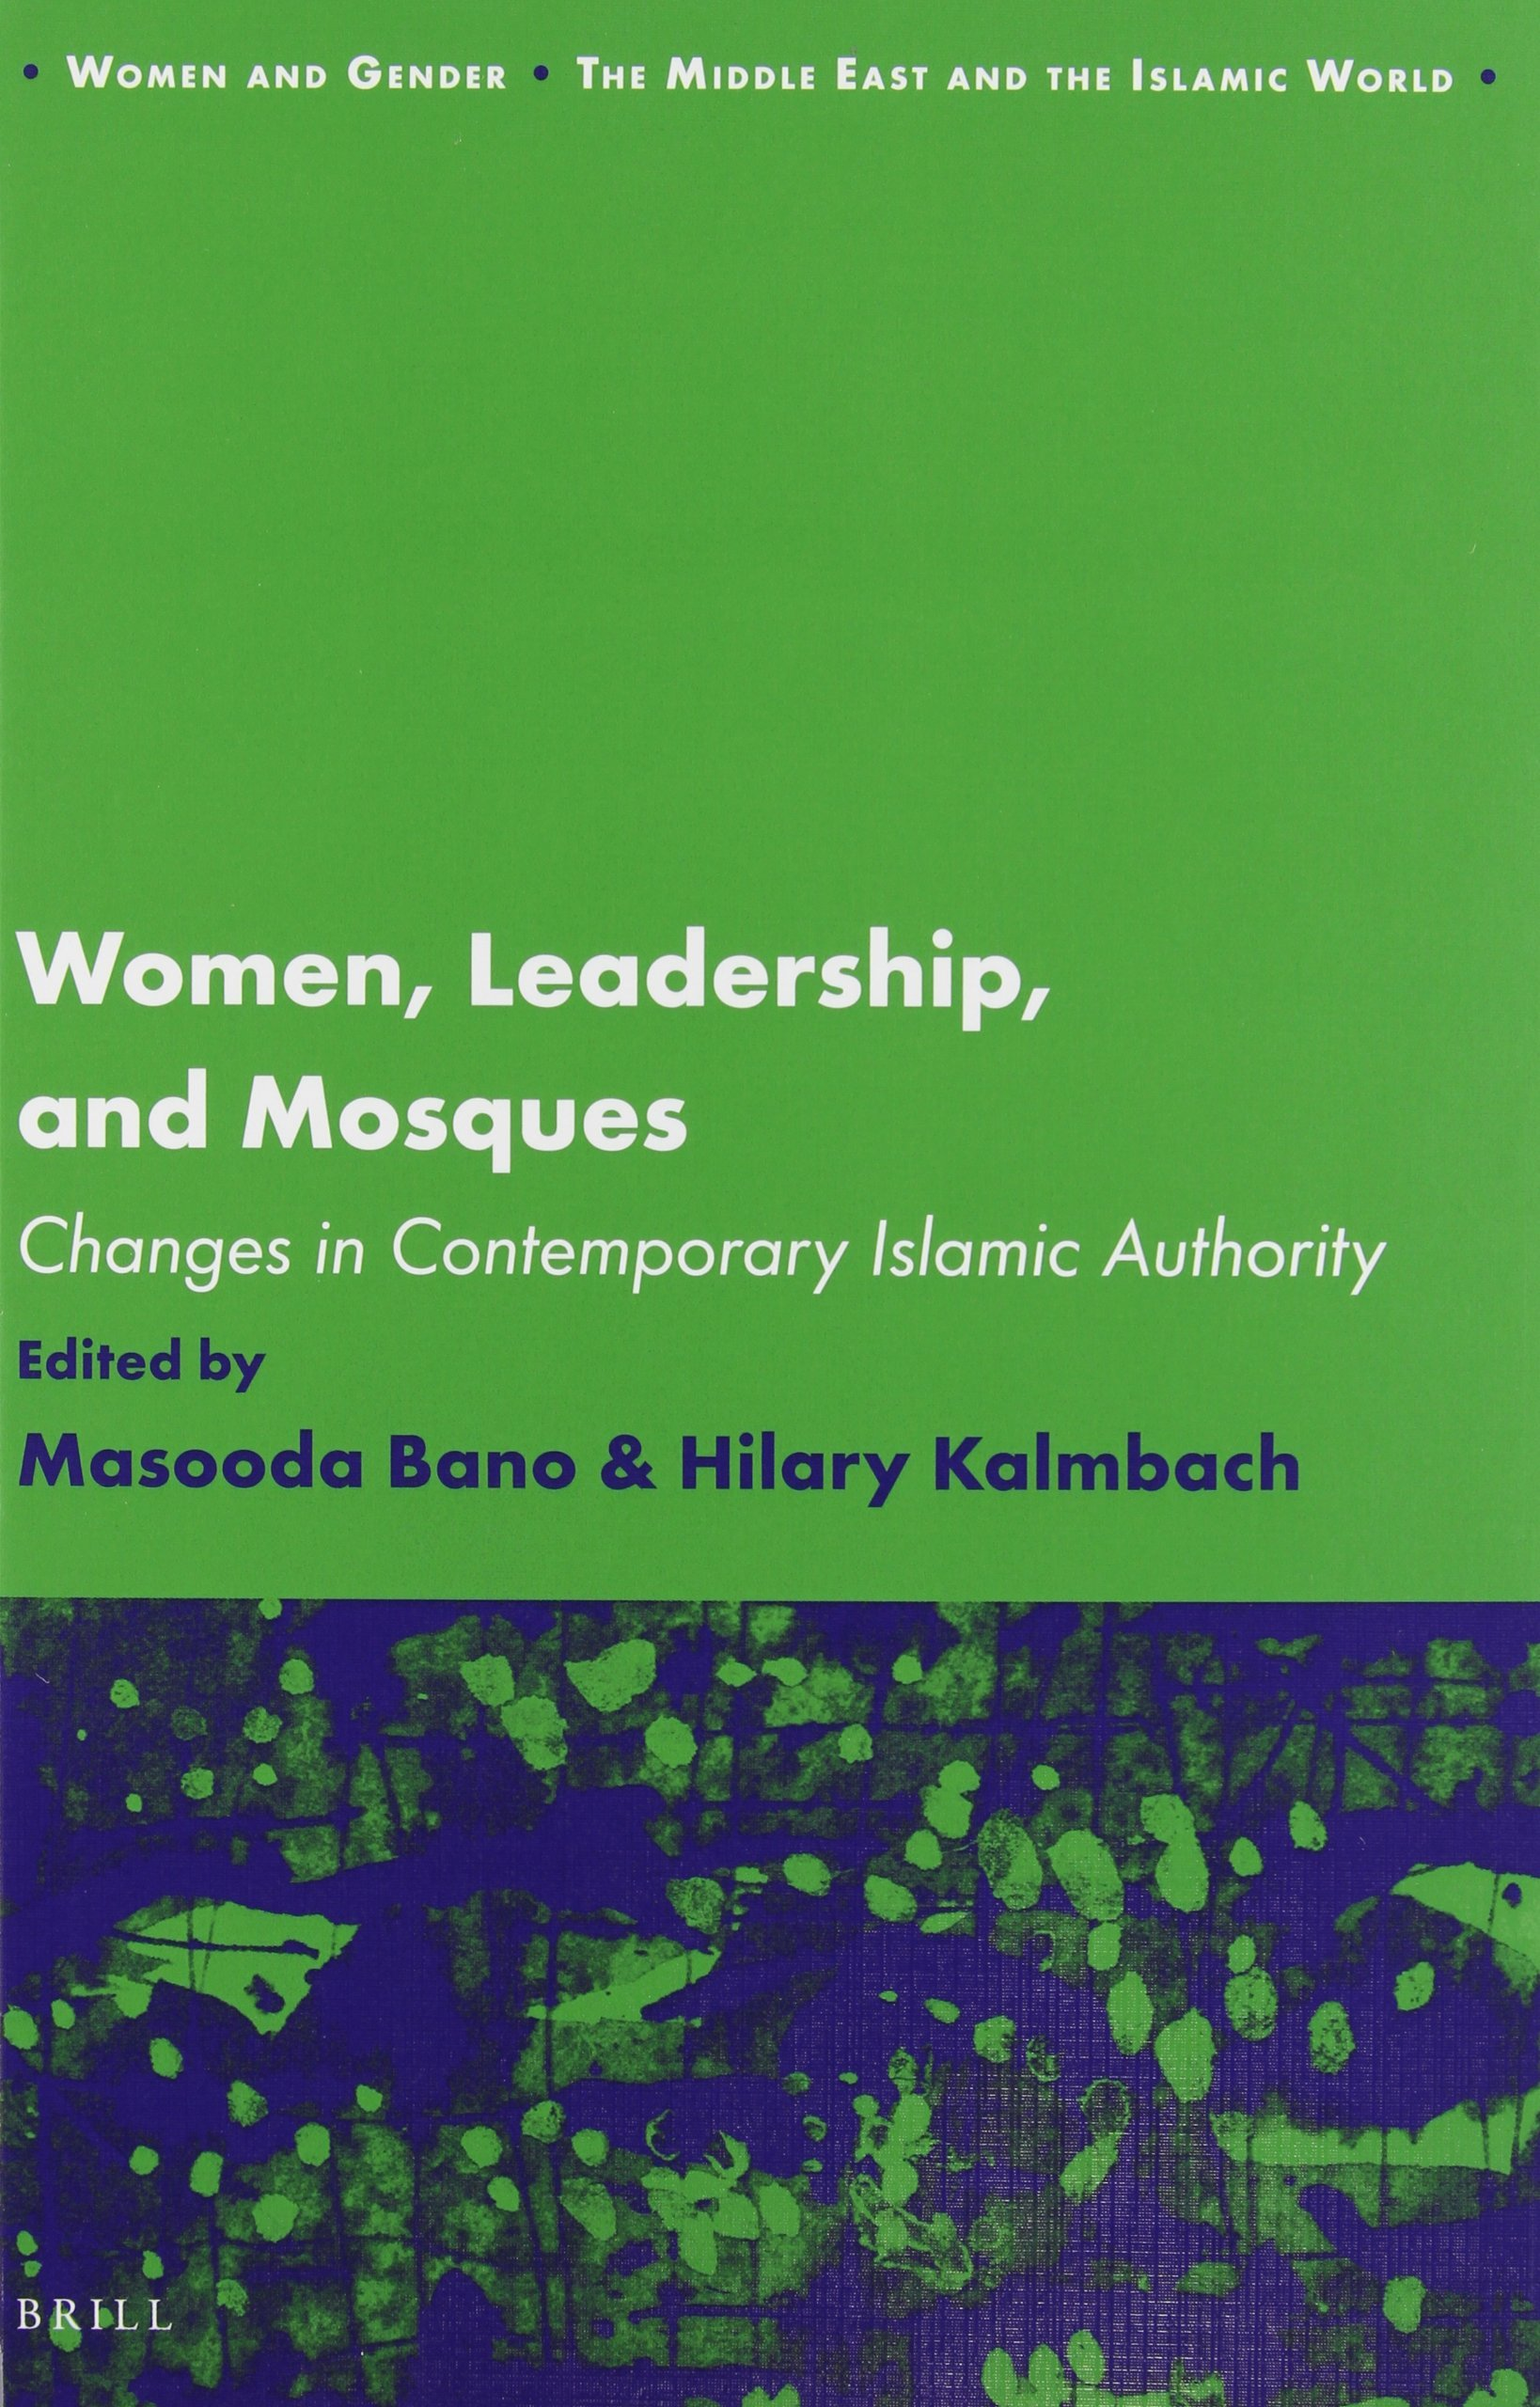 Women, Leadership, and Mosques (Women and Gender The Middle East and the Islamic World)